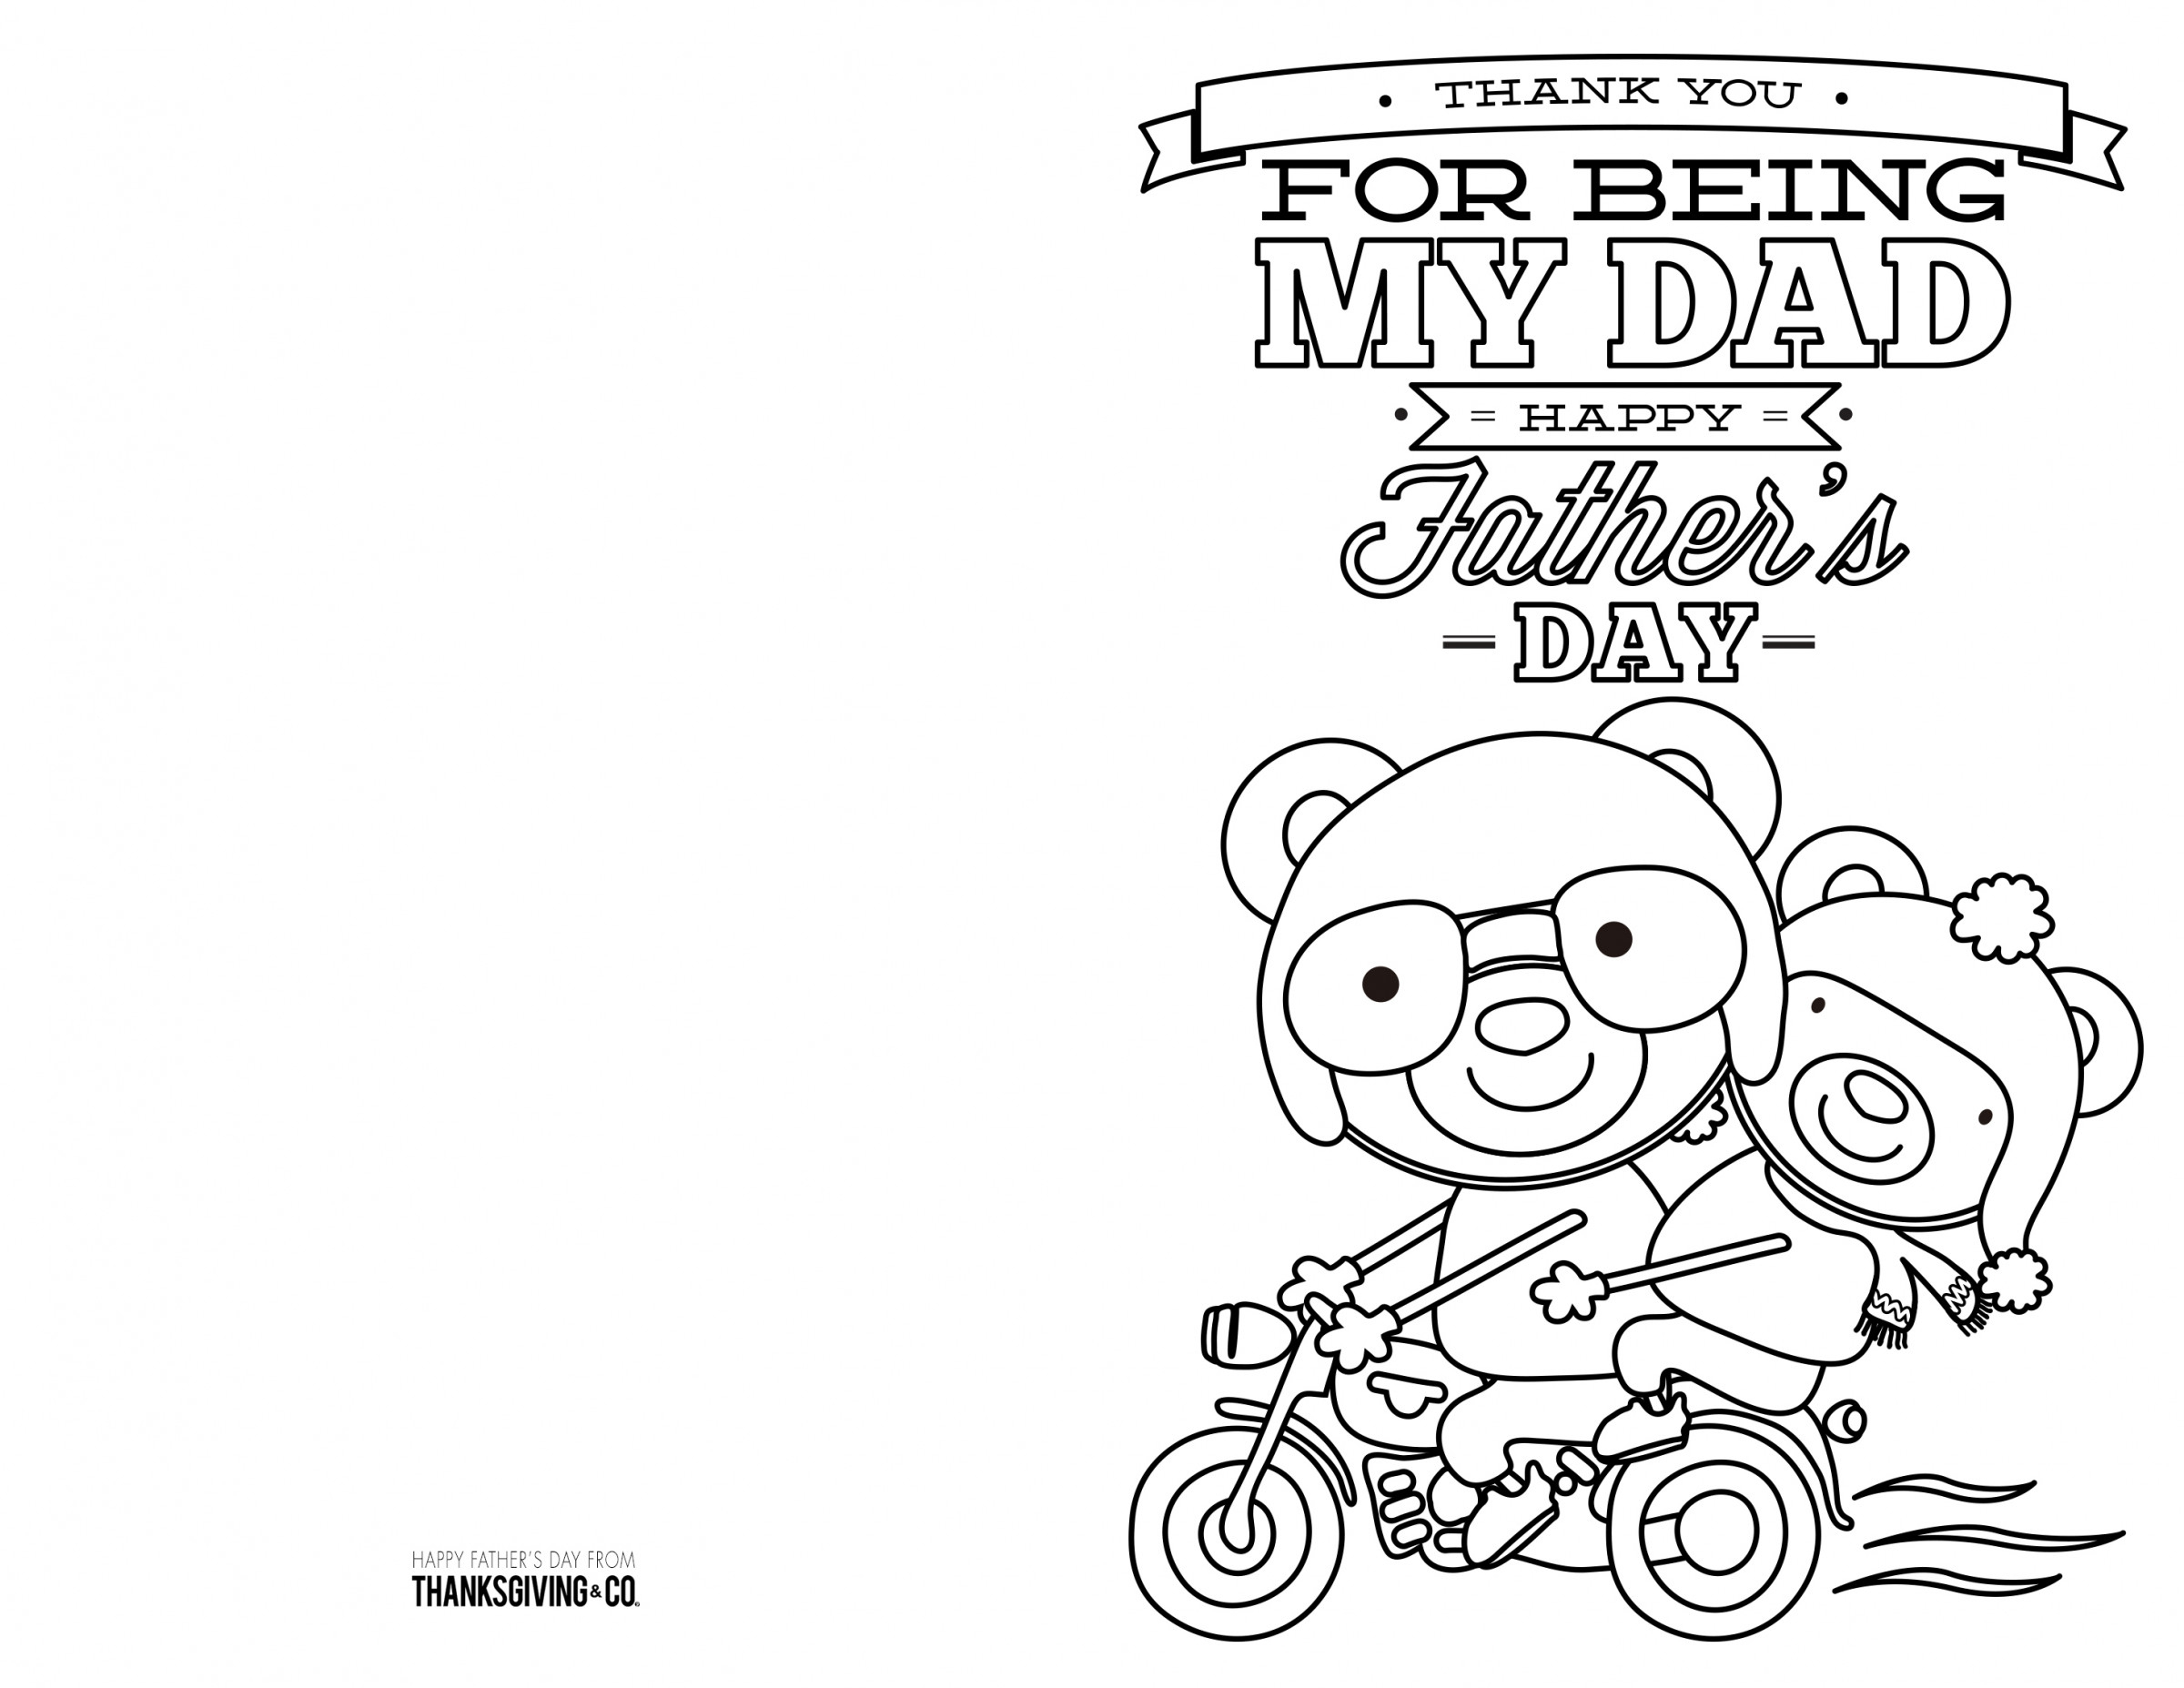 4 Free Printable Father's Day Cards To Color - Thanksgiving - Free Happy Fathers Day Cards Printable